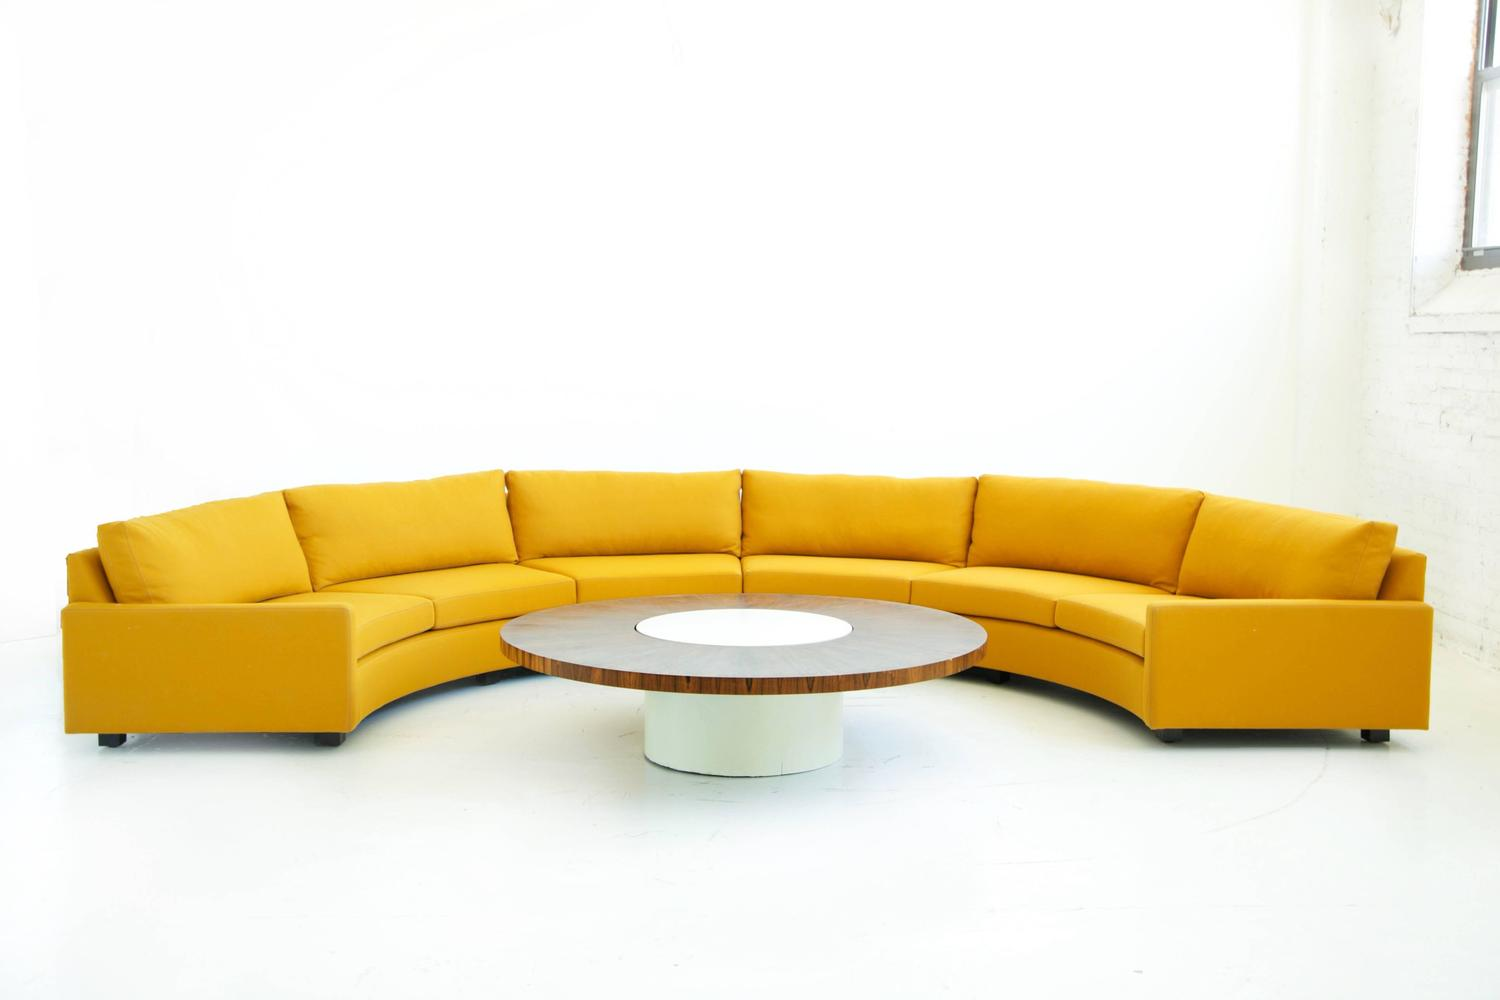 Milo Baughman Semi Circle Sectional Sofa For Sale At 1stdibs